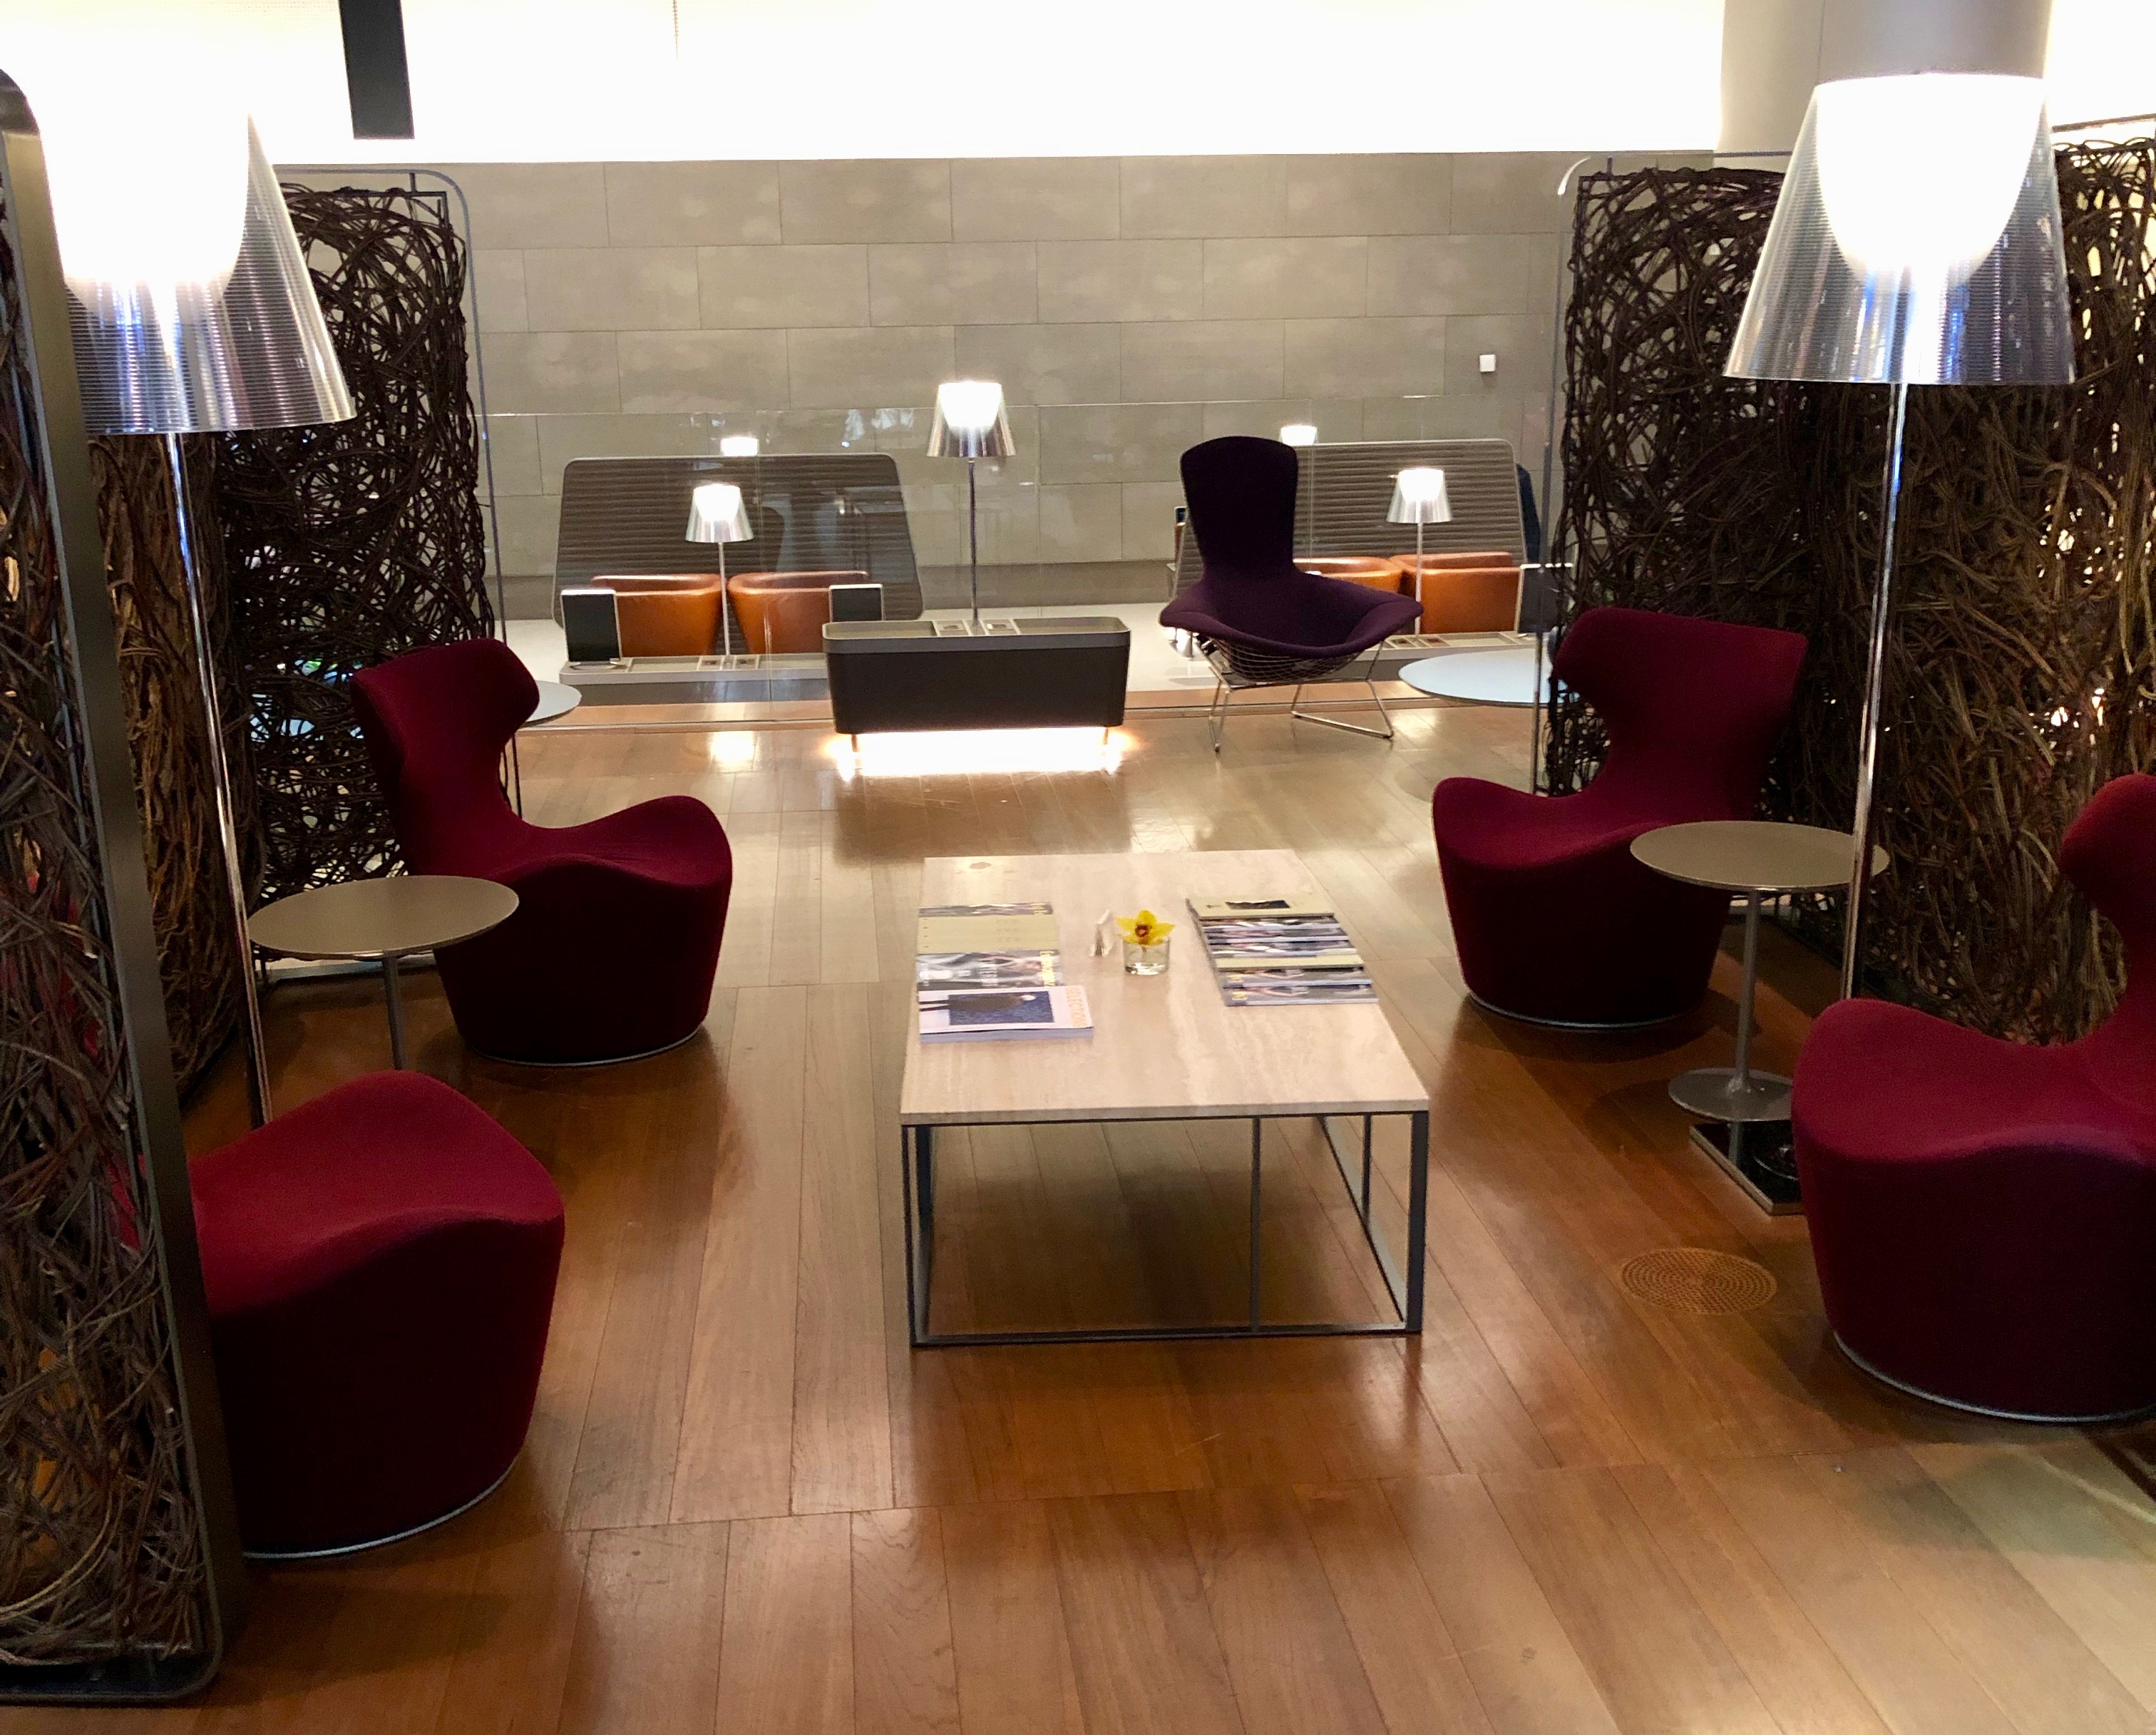 Qatar Airways Al Mourjan Business Class Lounge seating